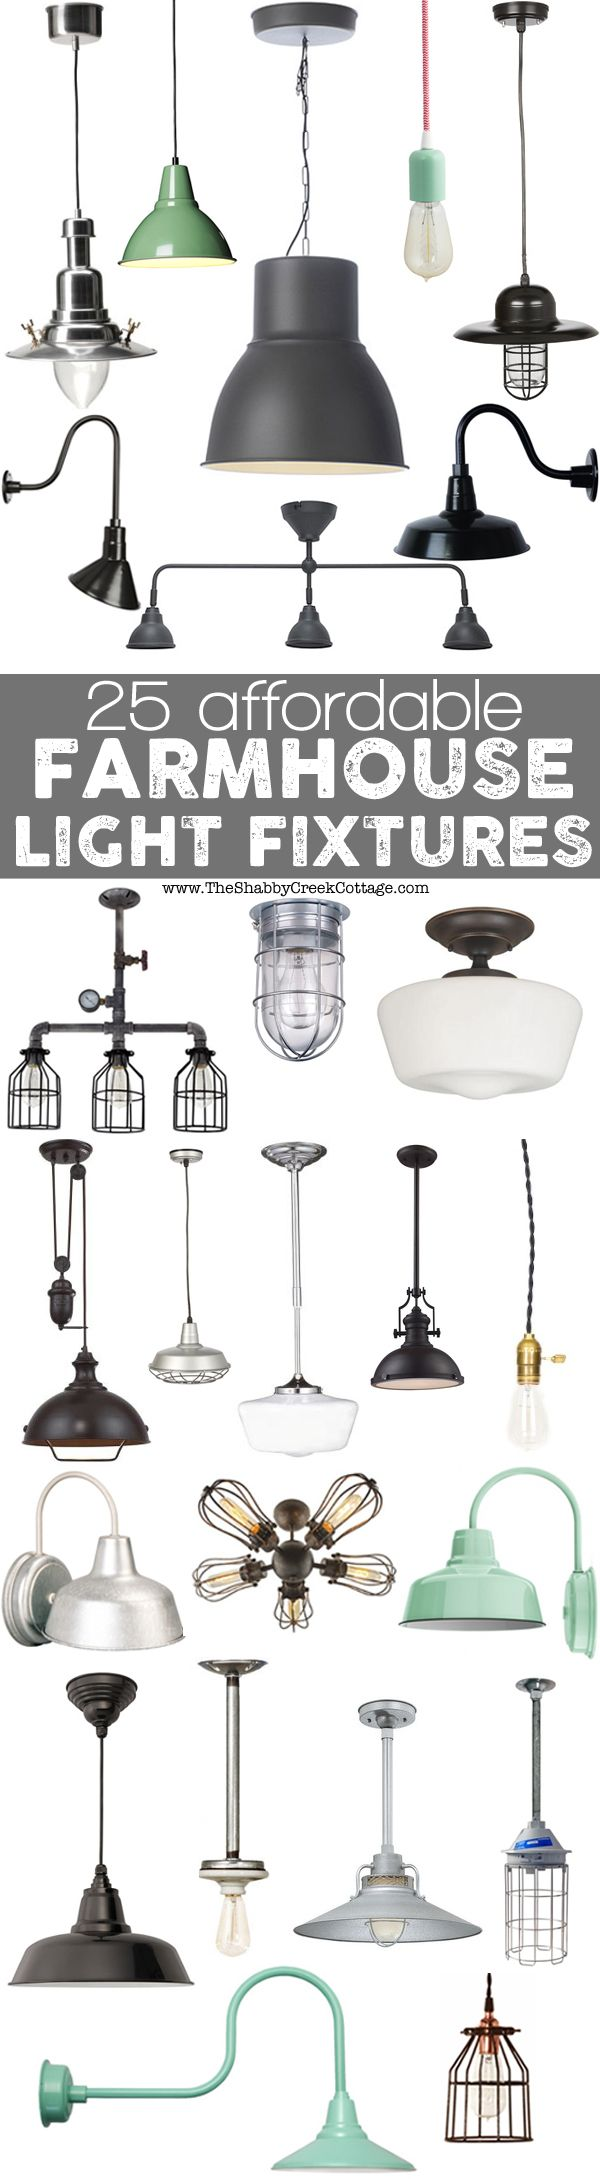 Farmhouse Lighting Ideas 25 Affordable Fixtures That Look Like Authentic Vintage Via The Shabby Creek Cottage